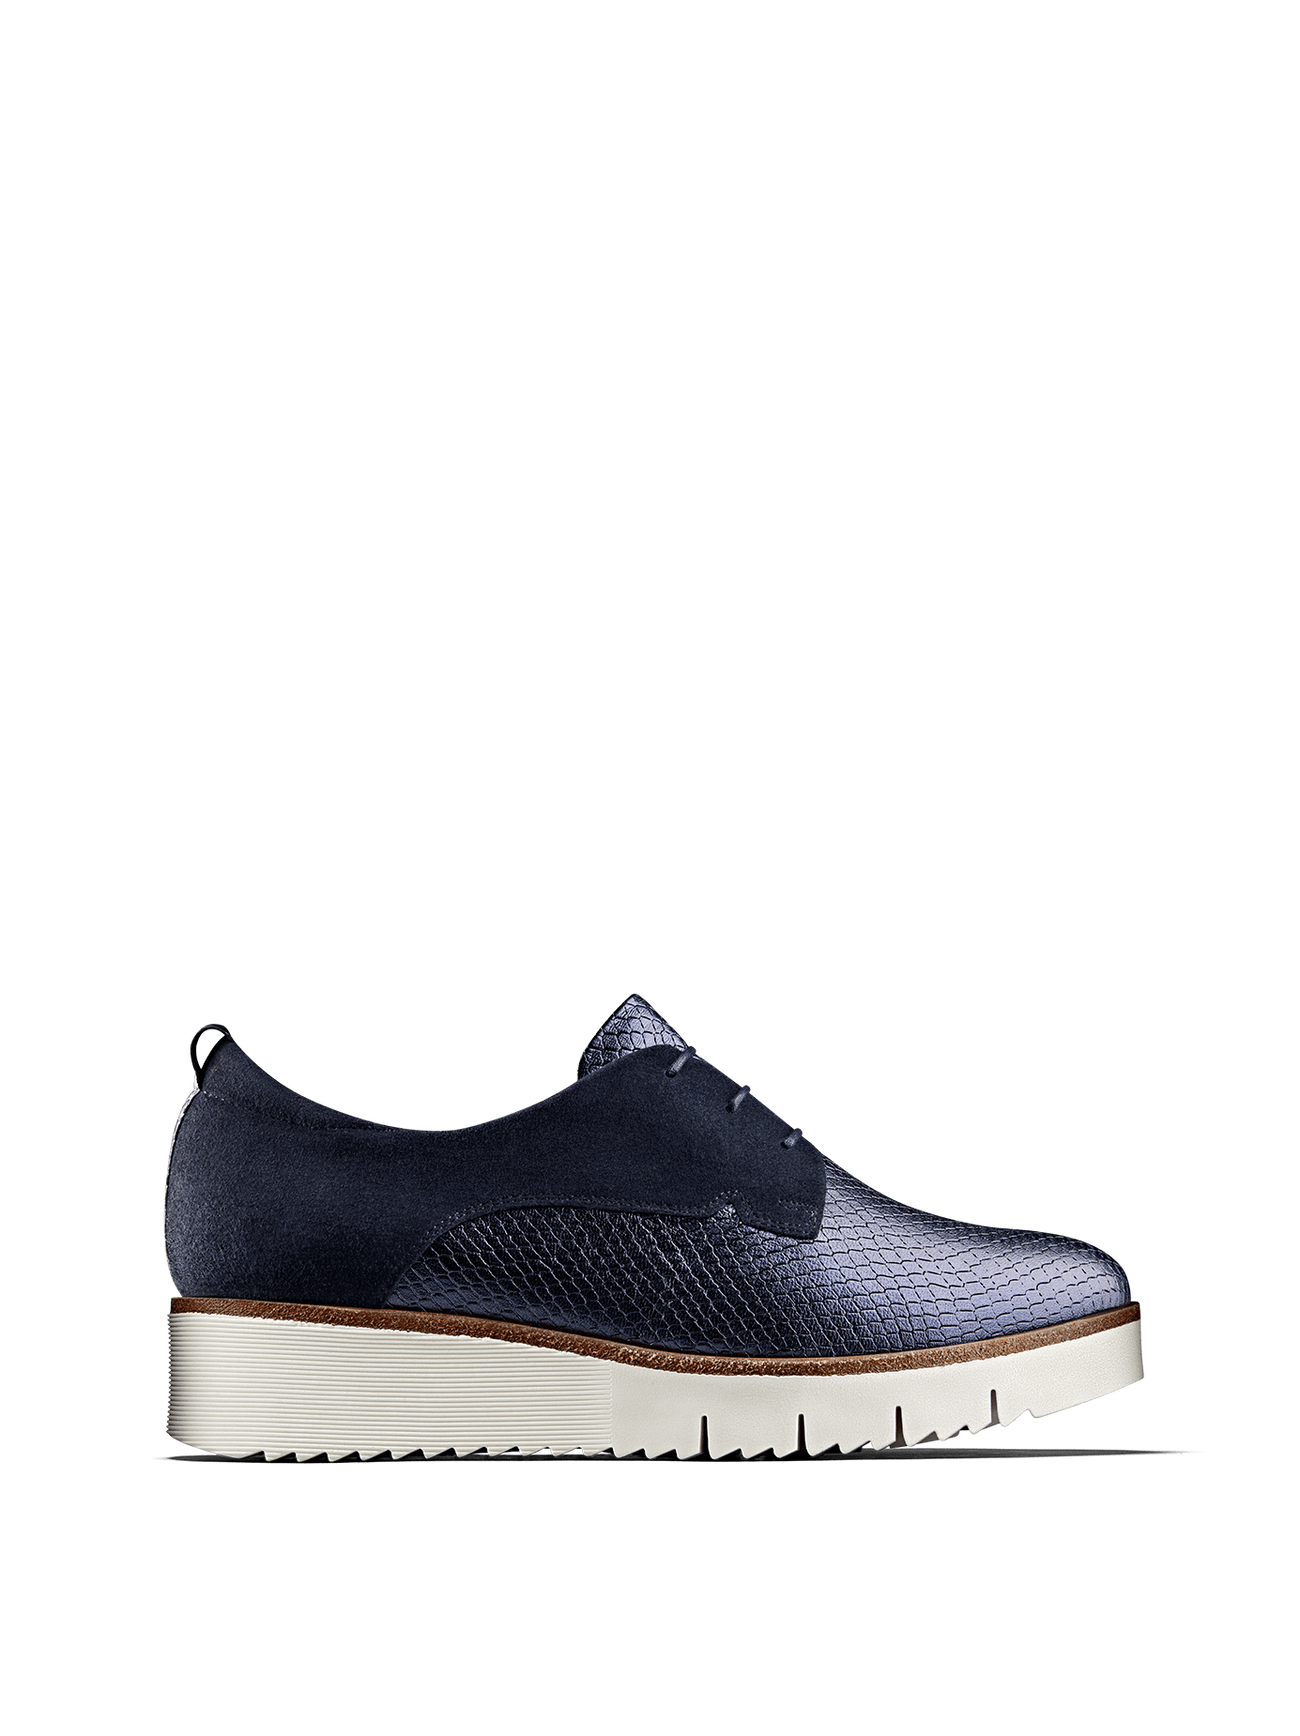 Hayle in navy metallic has a derby silhouette, chunky sole and lace up design.